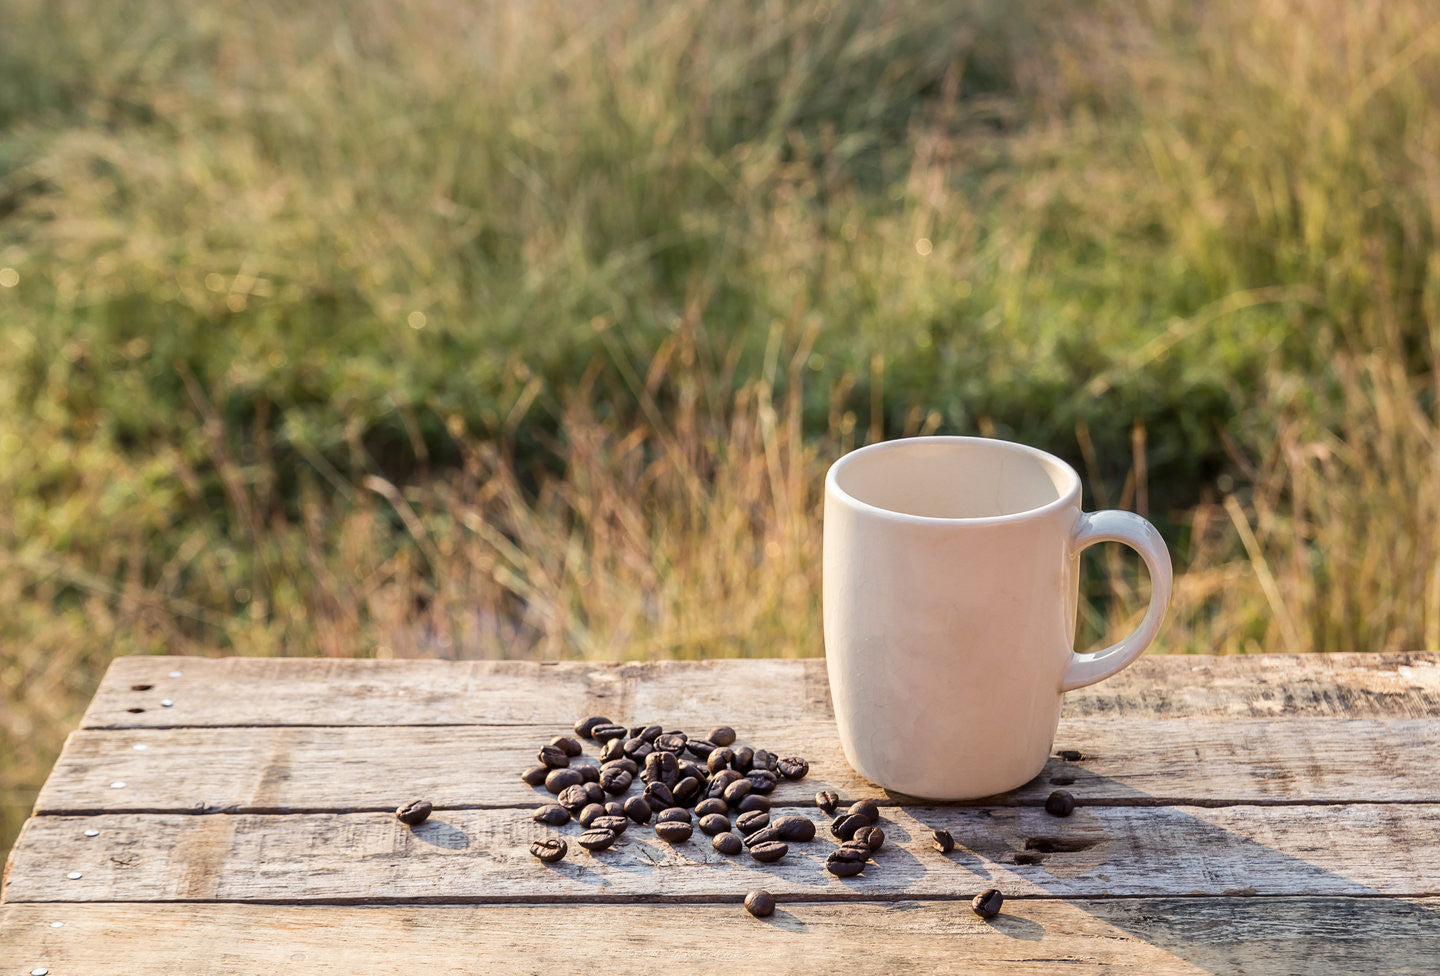 What's the best coffee to enjoy in the summer months?